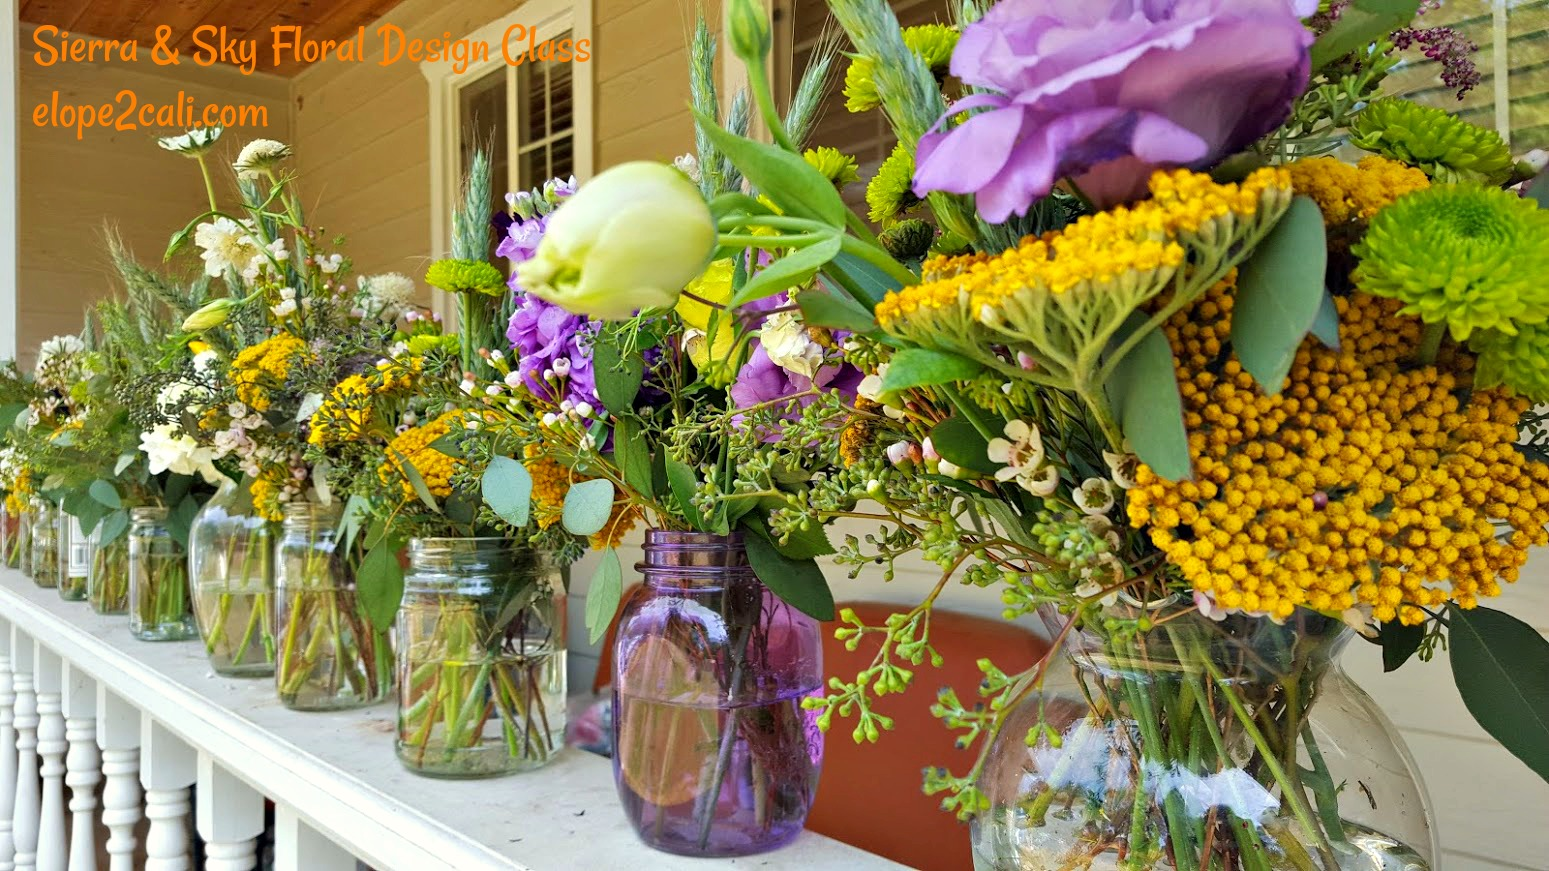 Sierra-and-Sky-mason-jar-centerpieces-shingle-springs-california-floral-class